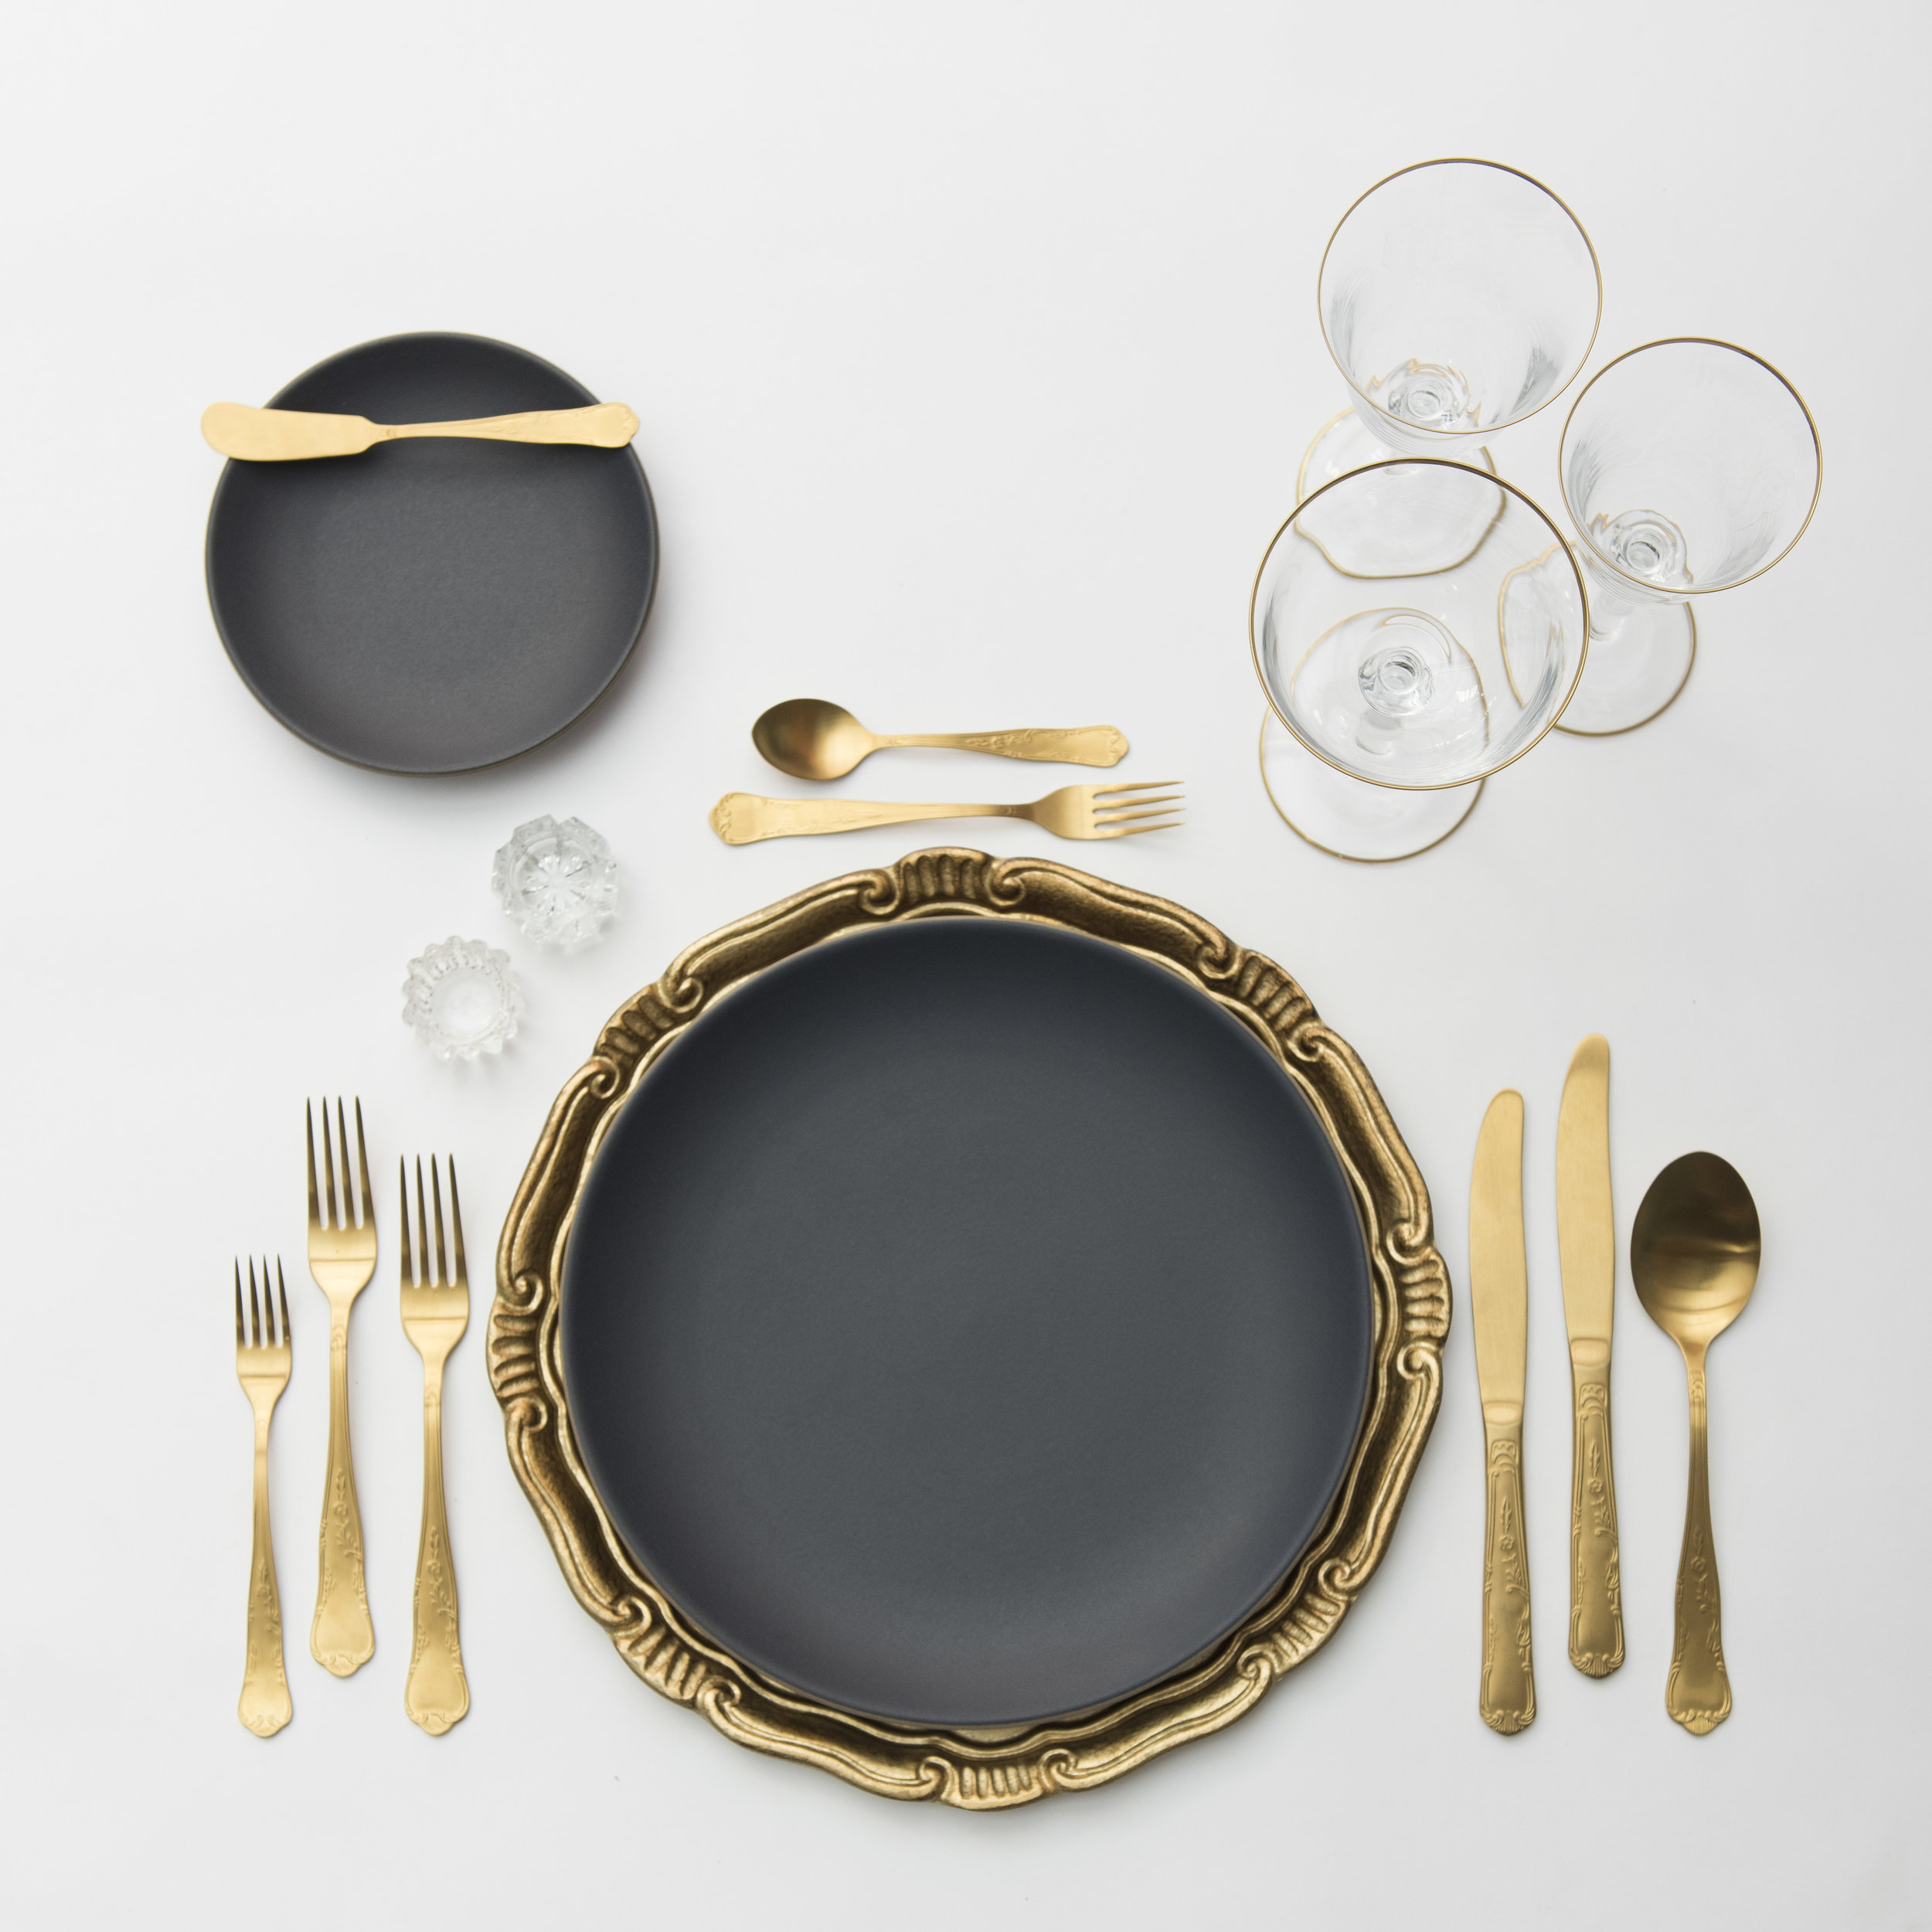 RENT: Florentine Chargers in Gold + Heath Ceramics in Indigo/Slate + Chateau Flatware in Matte Gold + Chloe 24k Gold Rimmed Stemware + Antique Crystal Salt Cellars   SHOP: Florentine Chargers in Gold + Chloe 24k Gold Rimmed Stemware